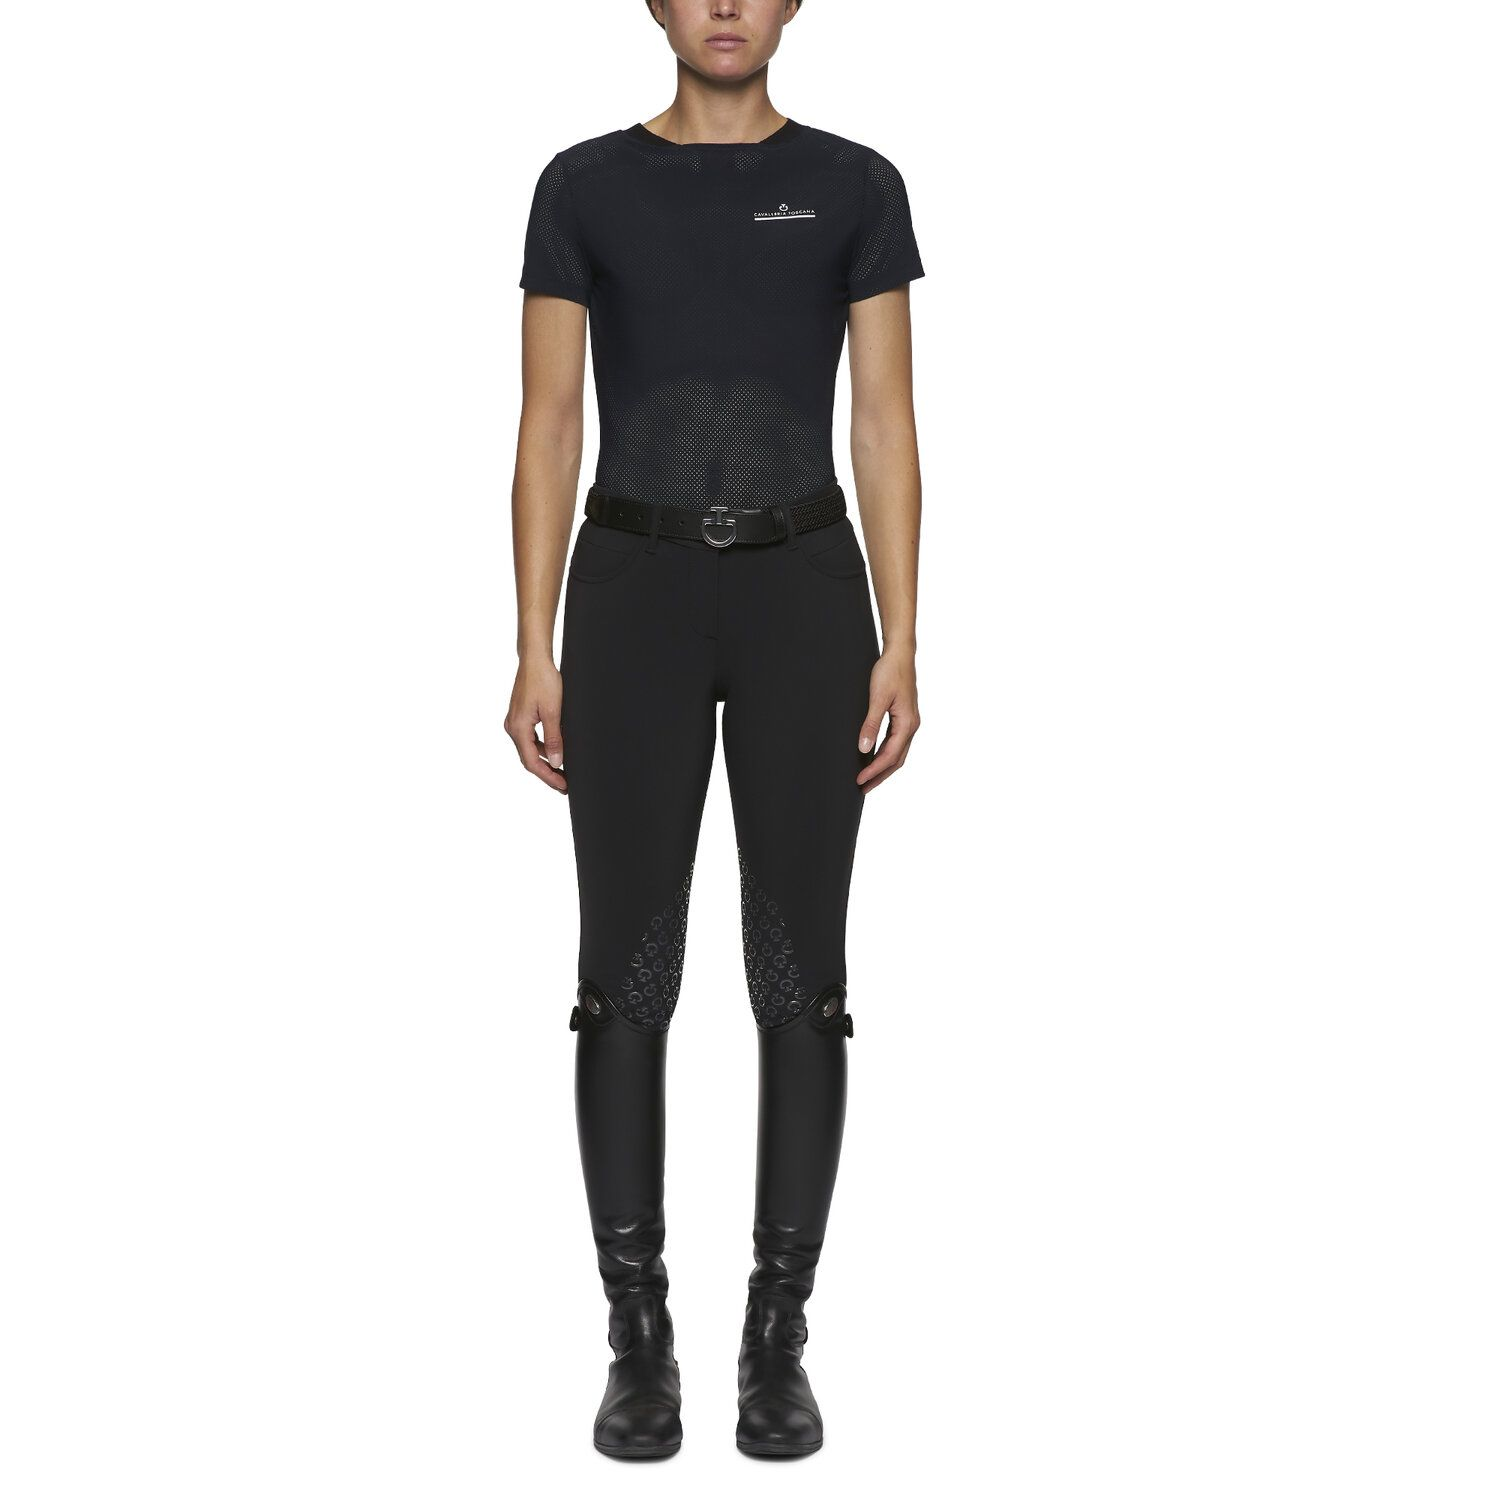 Perforated women's t-shirt